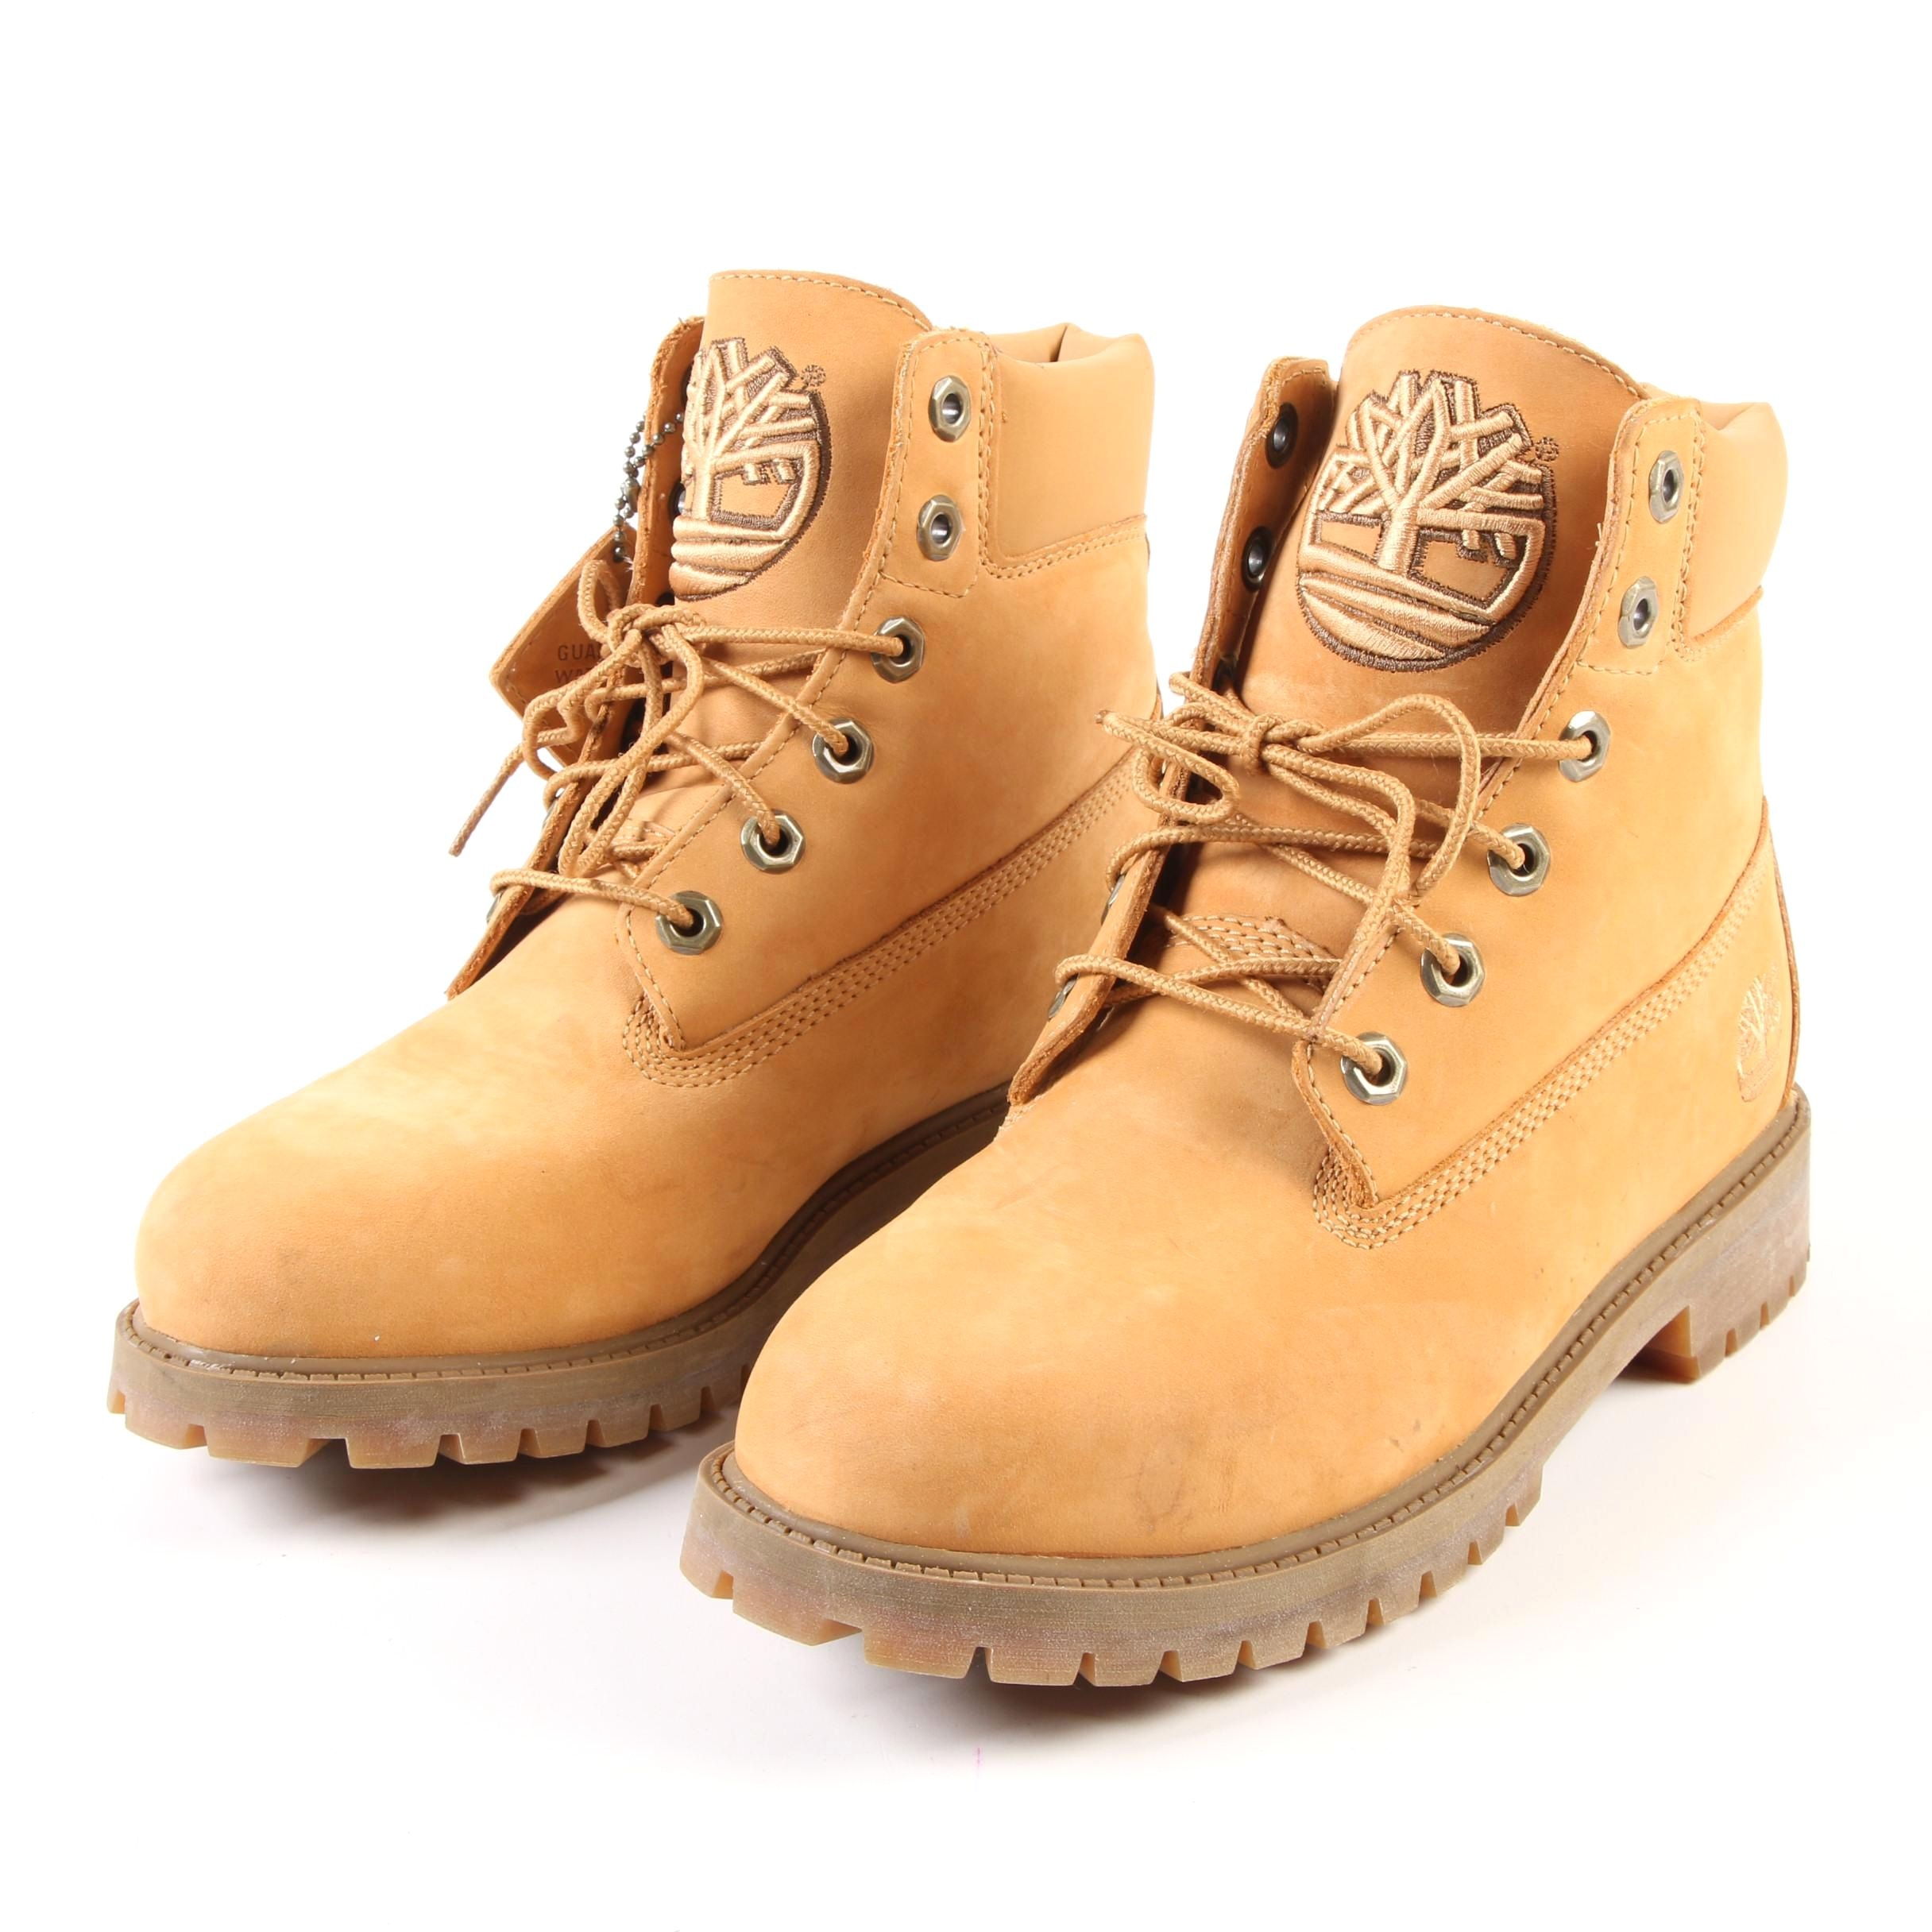 Women's Timberland 22909 Waterproof Leather Lace-Up Boots in Nubuck